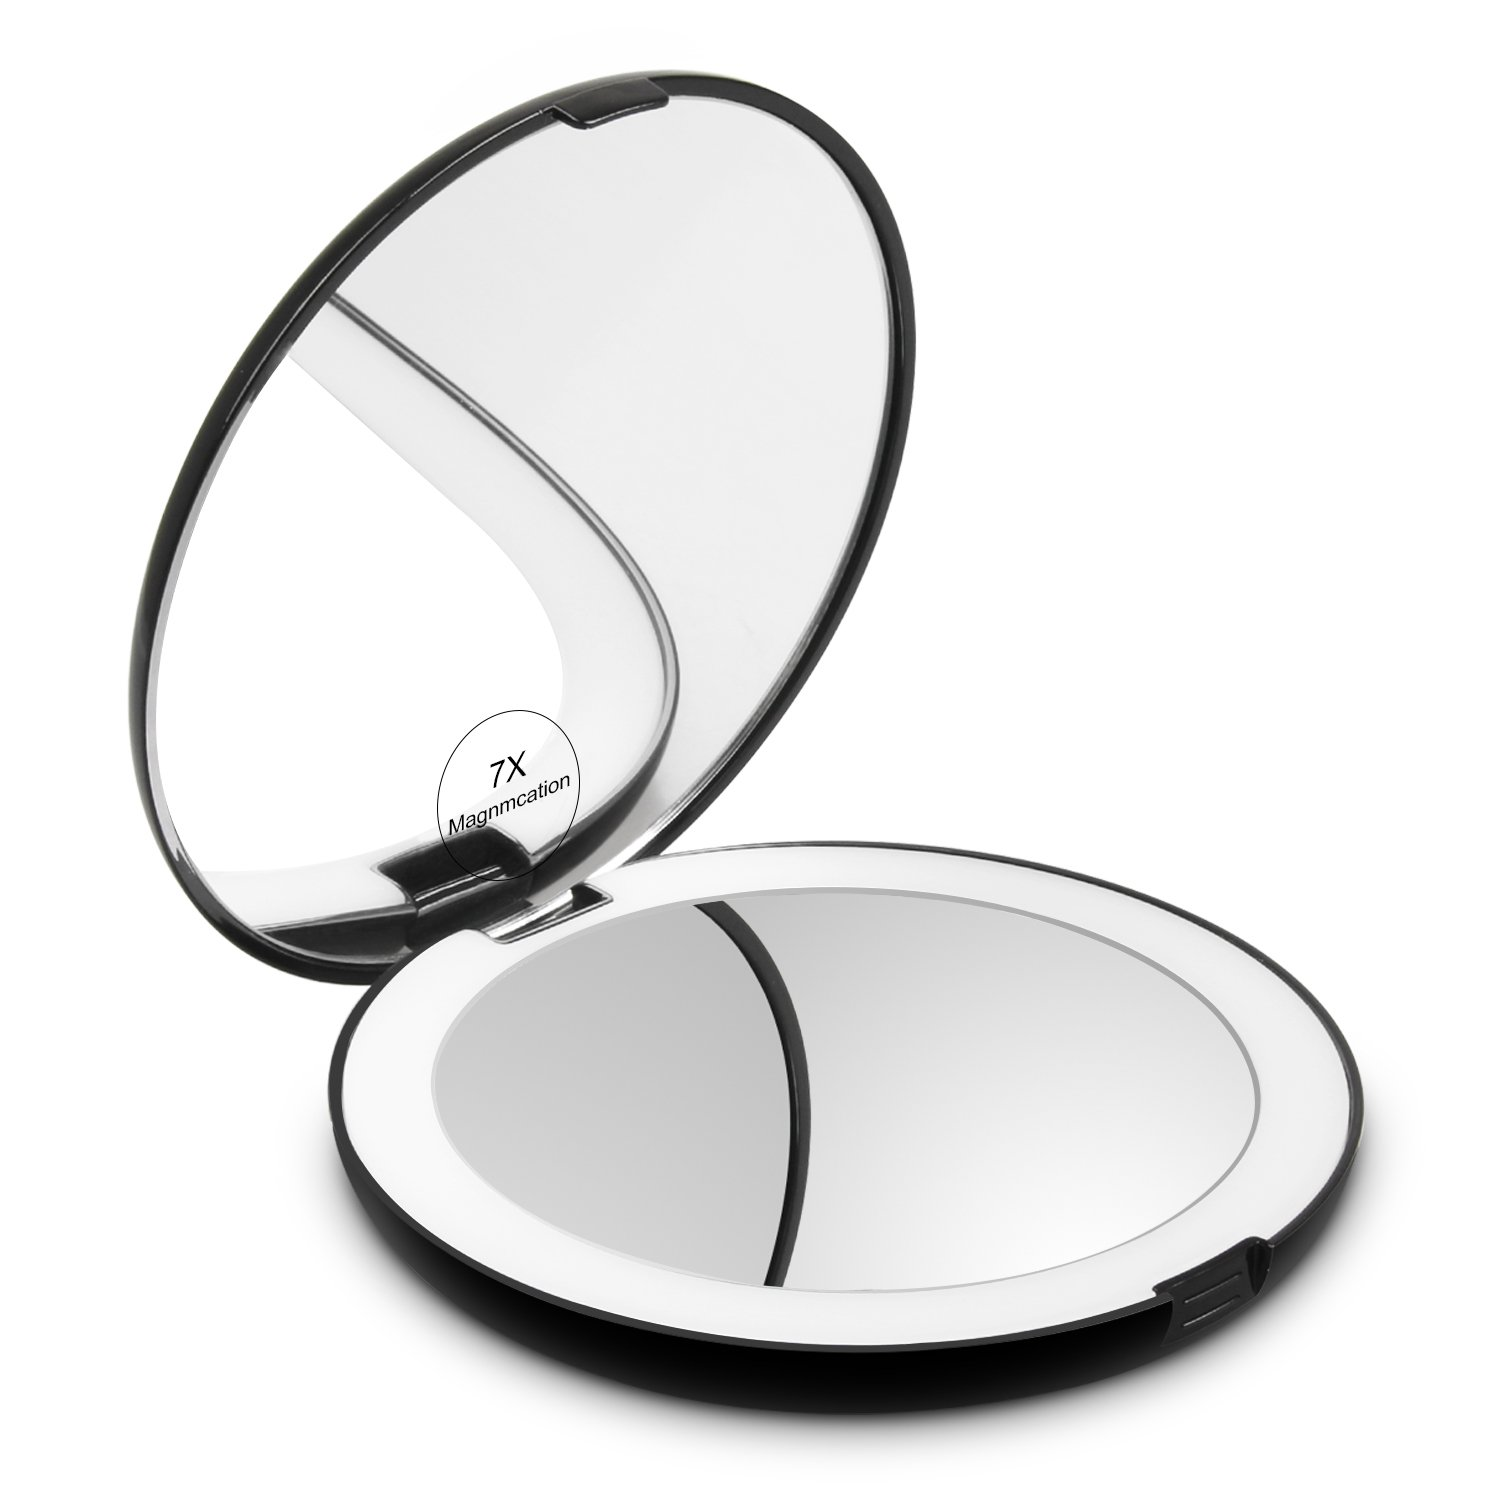 Herwiss Lighted Travel Makeup Mirror, 1x HD 7x Magnifying Folding Hand Held Compact Mirror- Double Sided, Portable, Bright Natural LED Illuminated for Beauty, Cosmetic, Camping and Travel